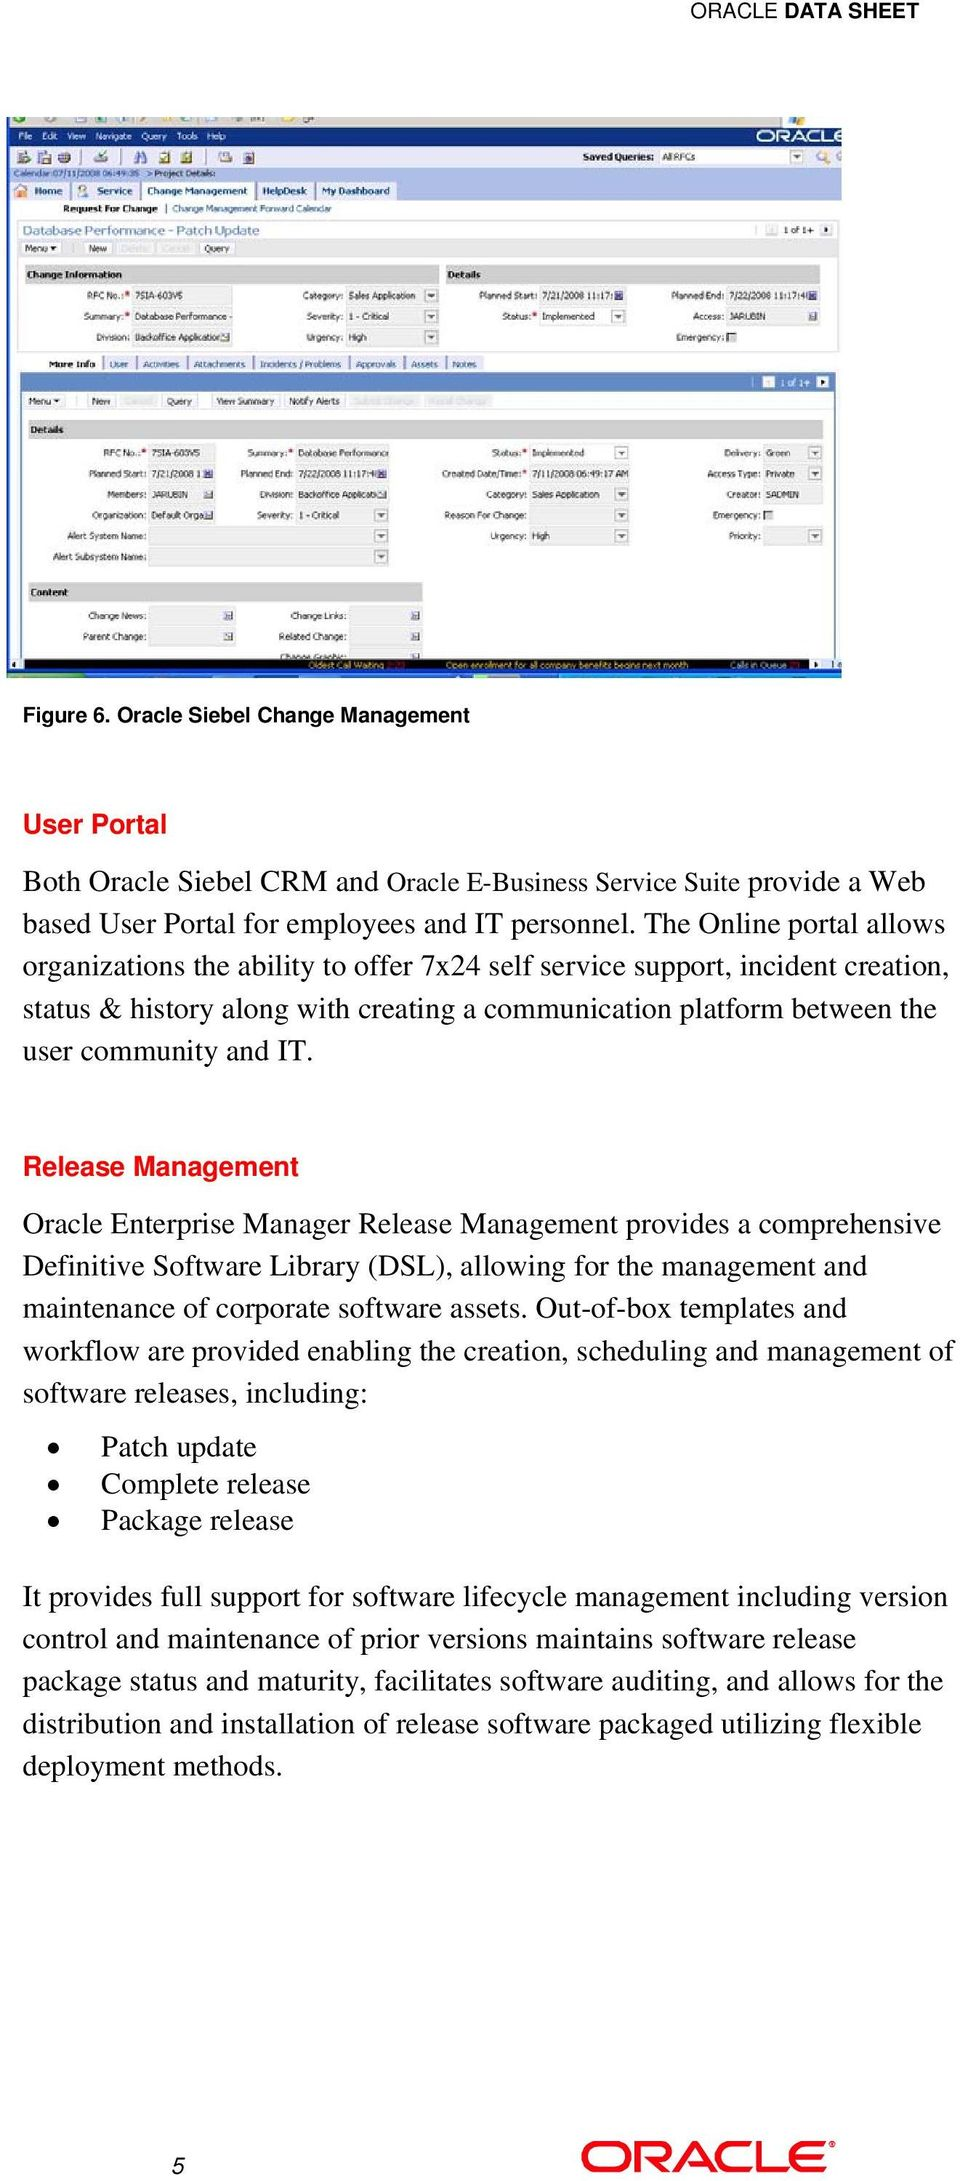 IT. Release Management Oracle Enterprise Manager Release Management provides a comprehensive Definitive Software Library (DSL), allowing for the management and maintenance of corporate software